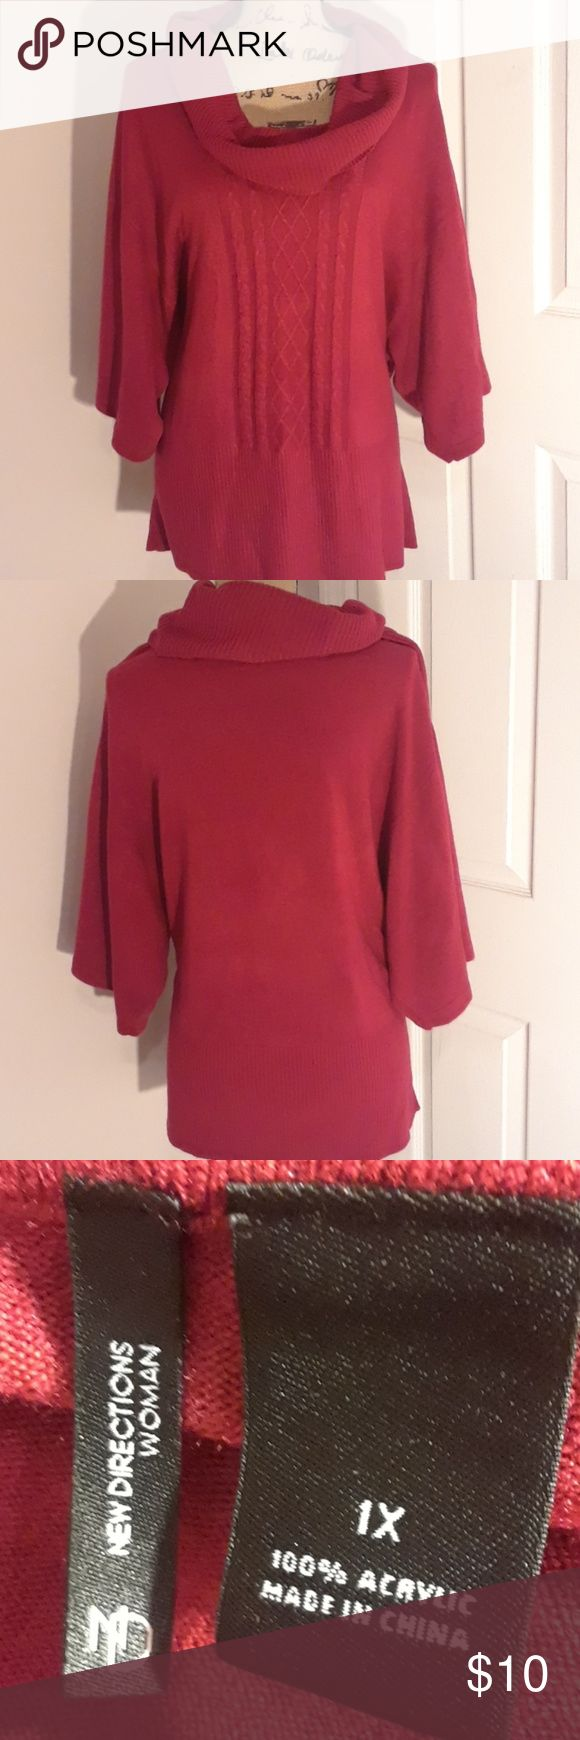 New Directions Woman Cowl Neck Sweater Preowned by me, still in very good condition with very little visual signs of wear exactly as shown in pictures  without any holes stains, markings or serious pulls New Directions Sweaters Cowl & Turtlenecks